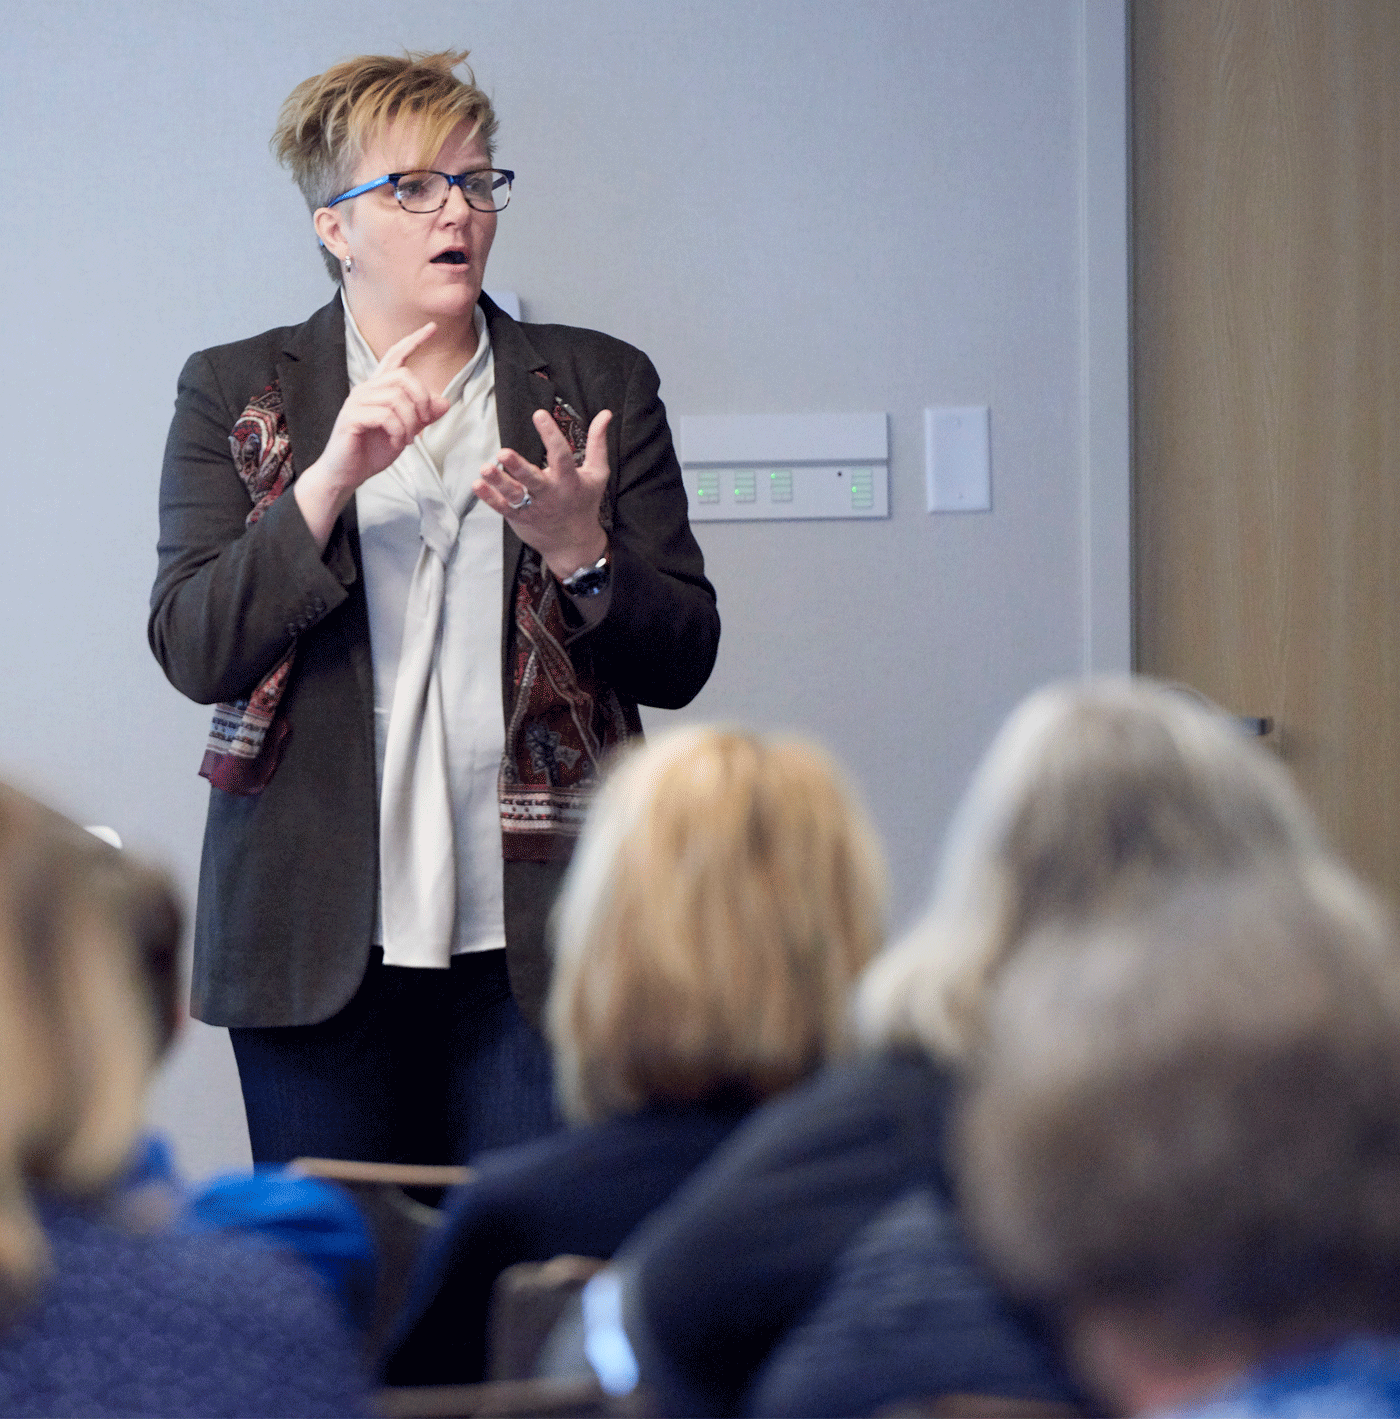 A woman with short blond hair and a black blazer counts off items on her fingers while giving a talk in front of a crowd of adults.